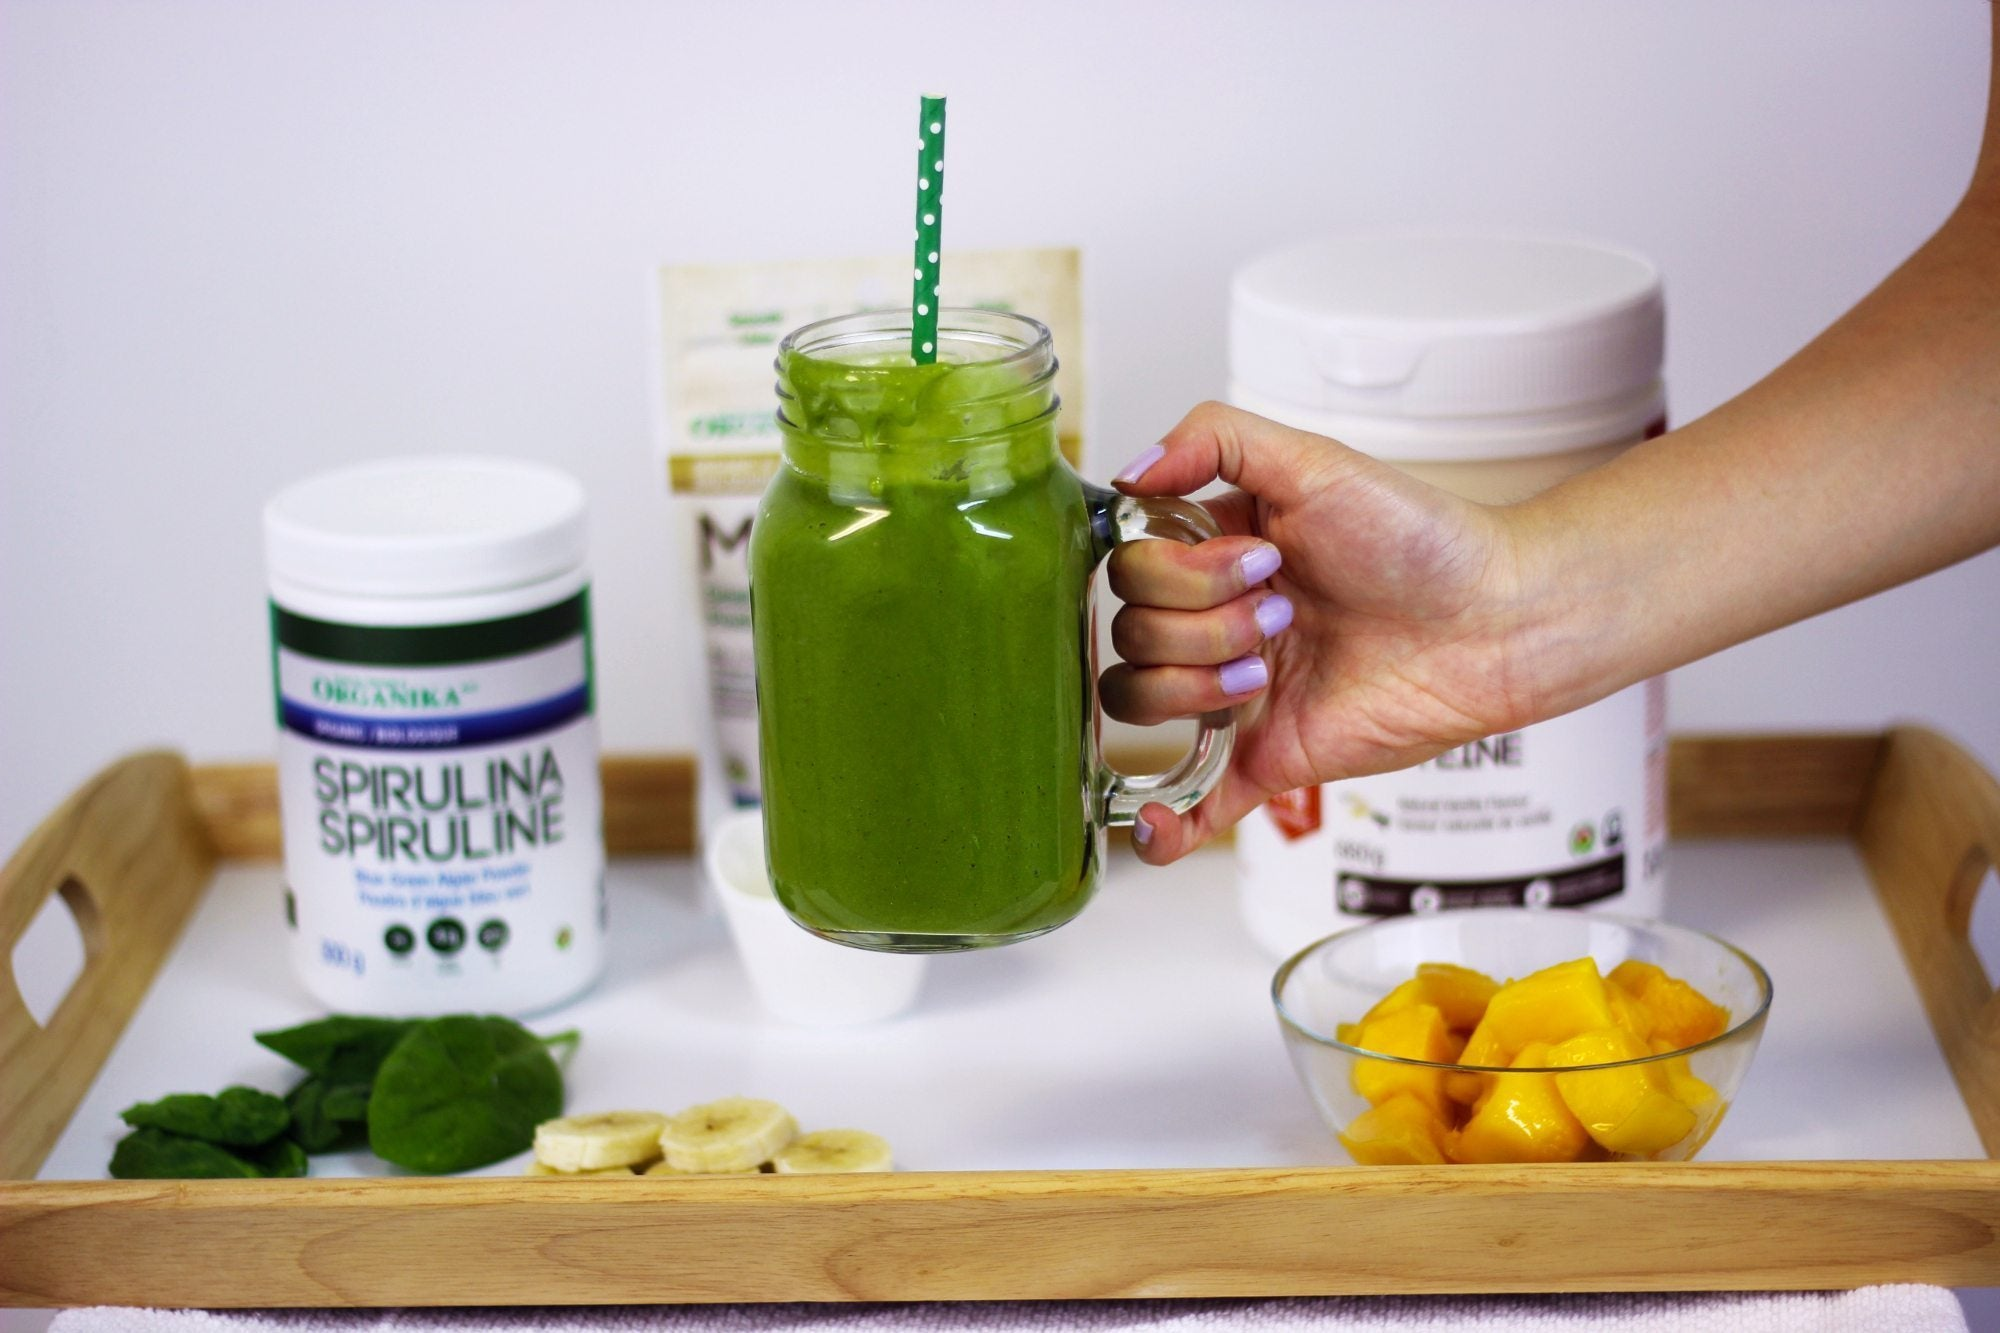 Our Green Retreat smoothie recipe is a delicious way to get the benefits of spirulina into your diet